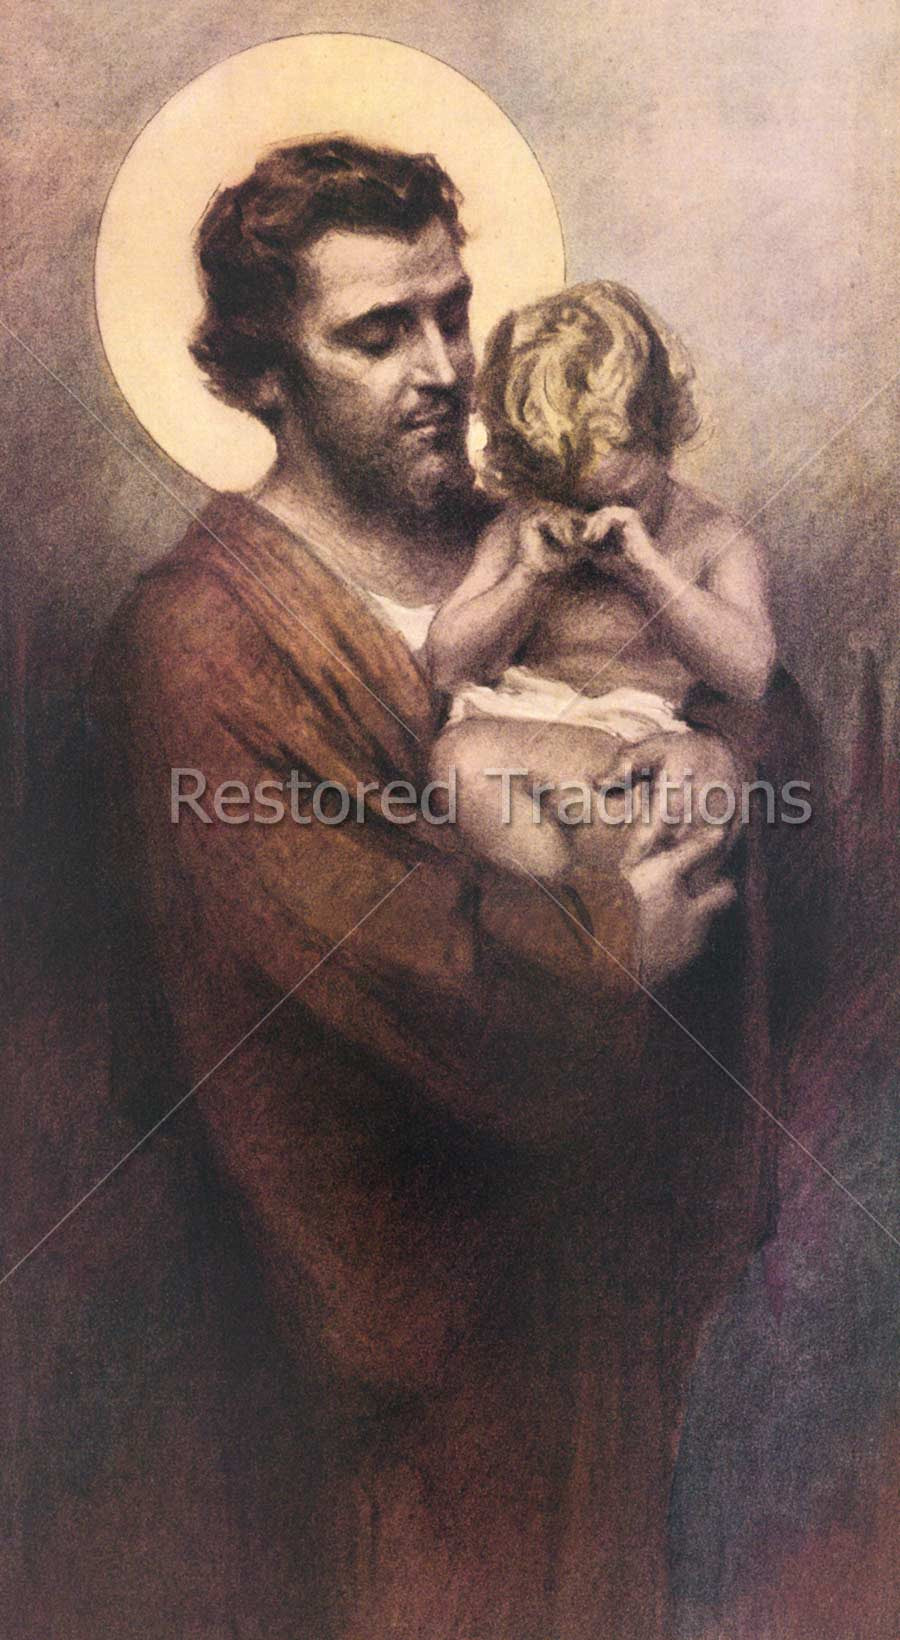 Joseph holds weeping Child Jesus